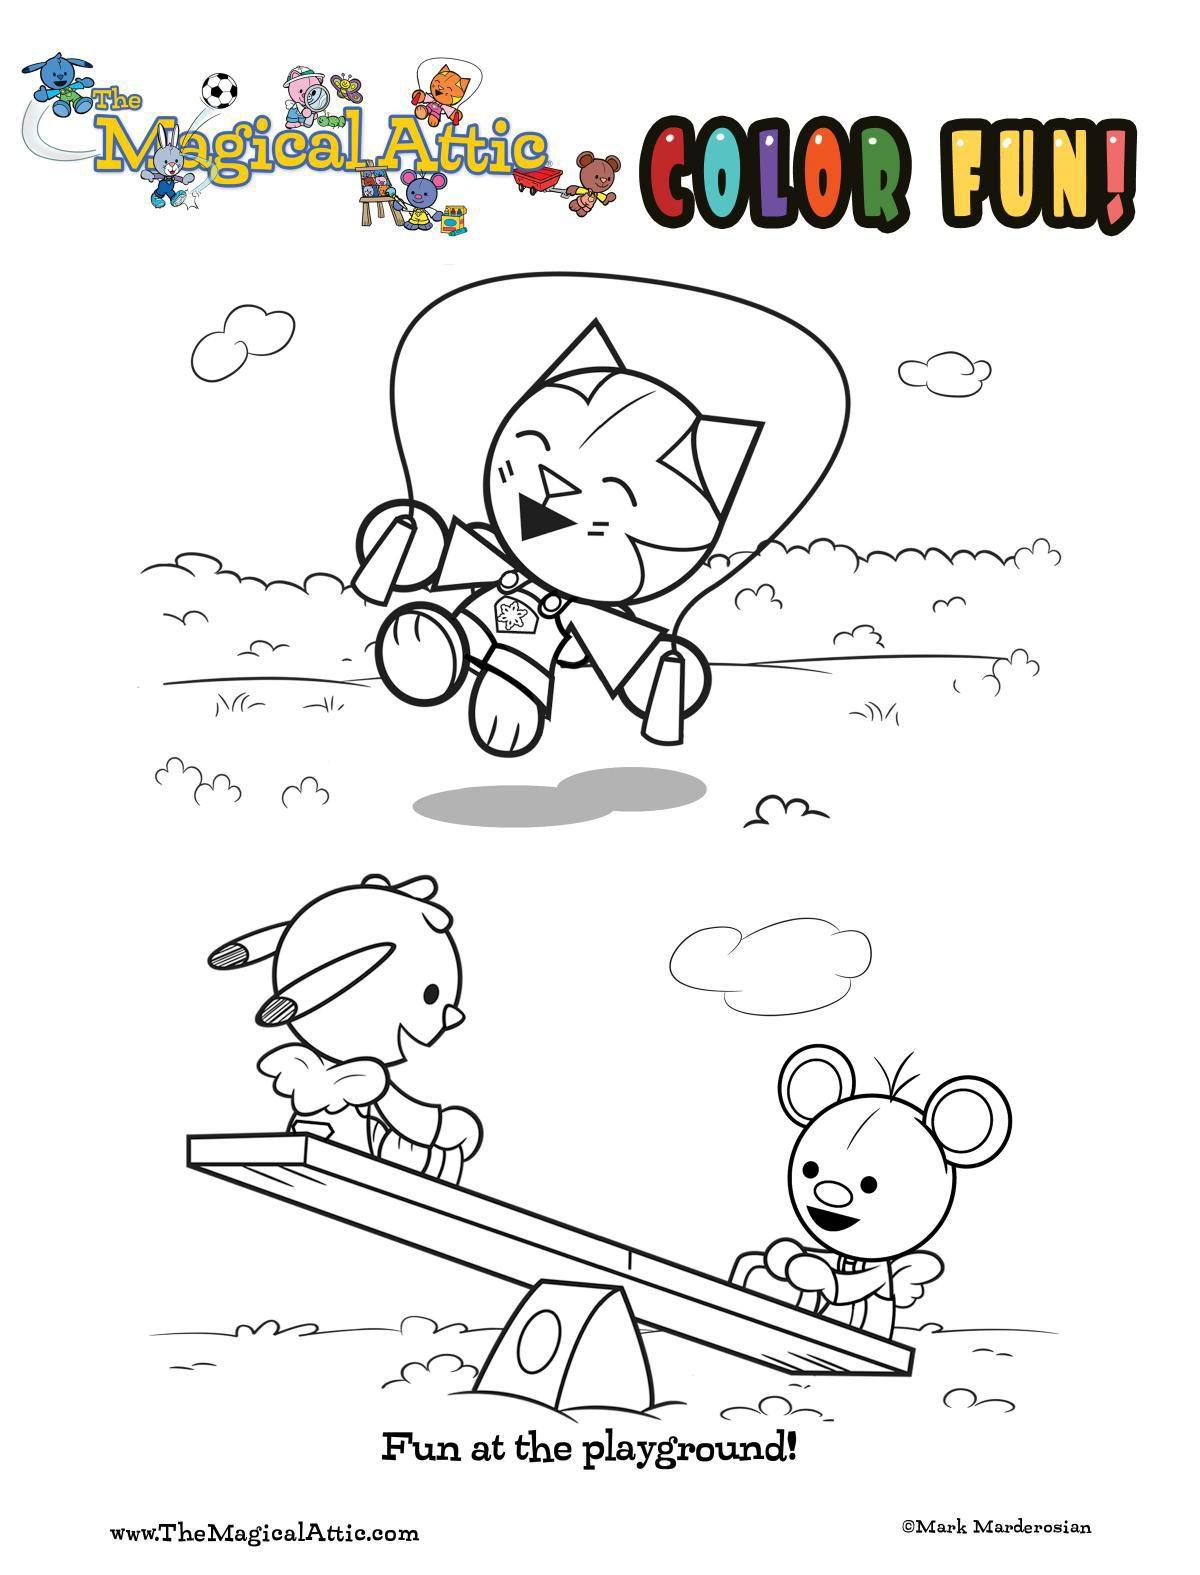 Coloring fun at the playground